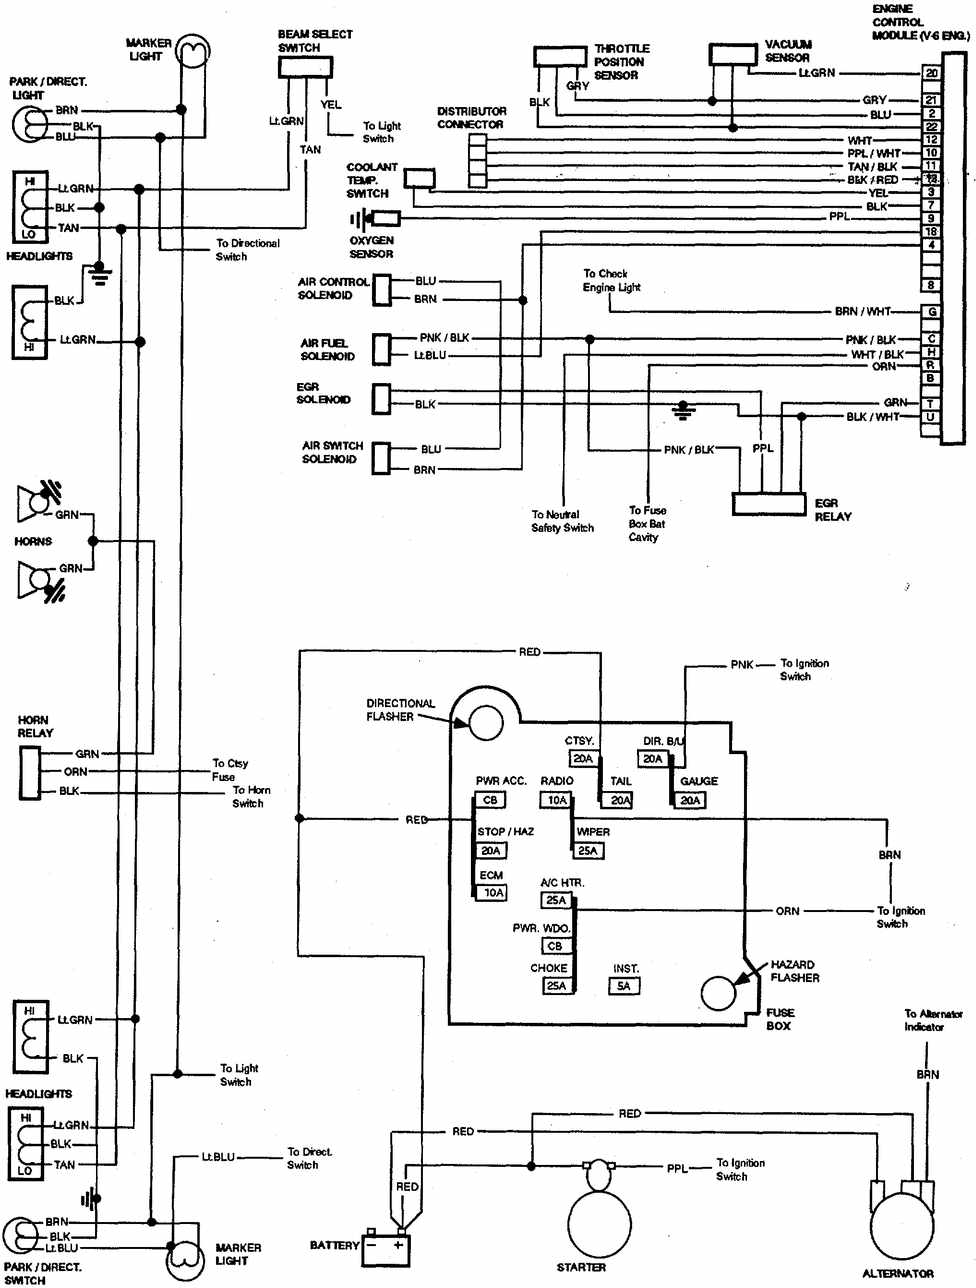 1966 gmc turn signal wiring diagram 1966 c10 turn signal wiring diagram